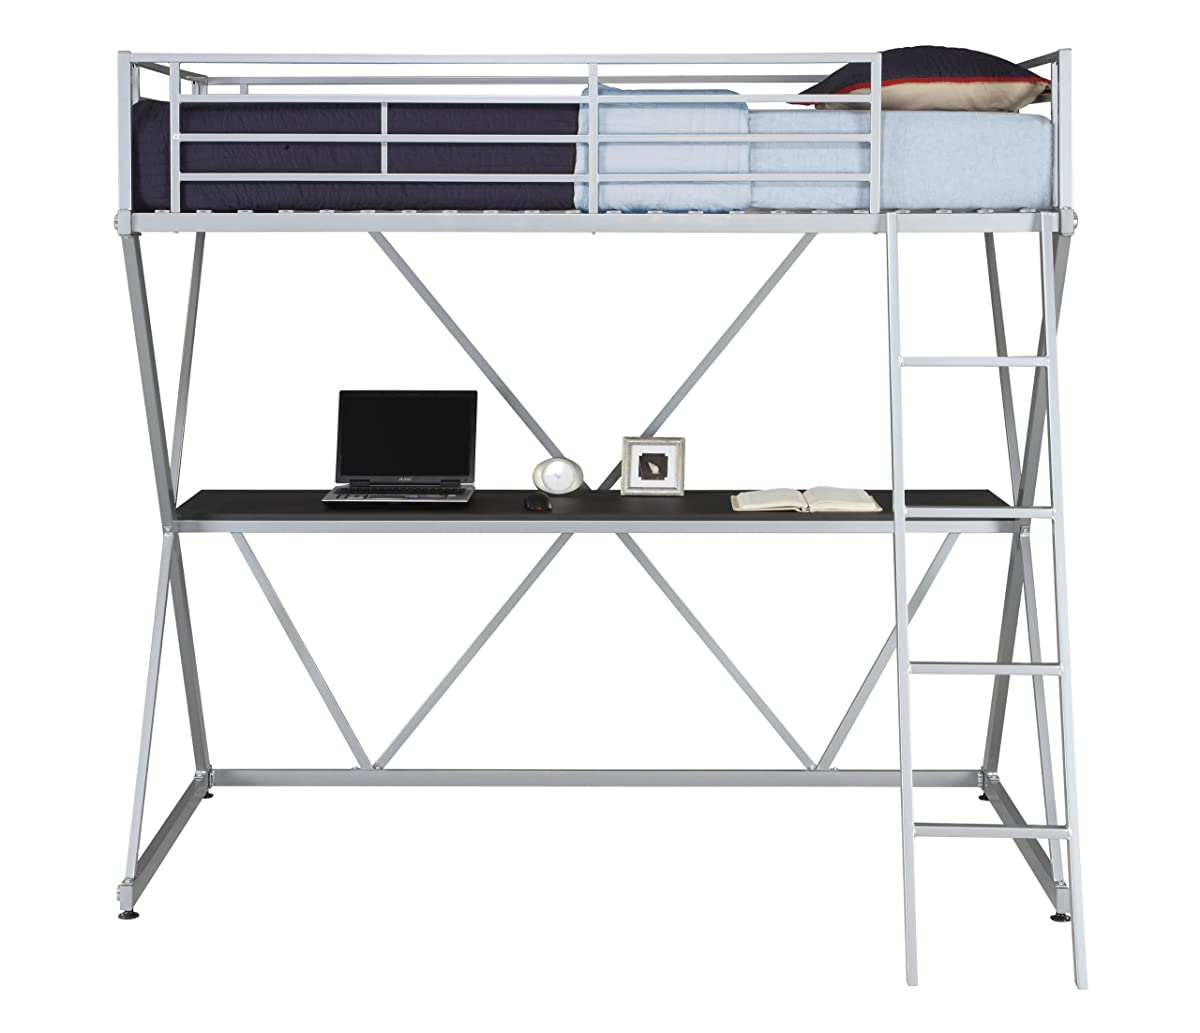 DHP X-Loft Metal Bunk Bed Frame with Desk - Silver with Space Saving Design